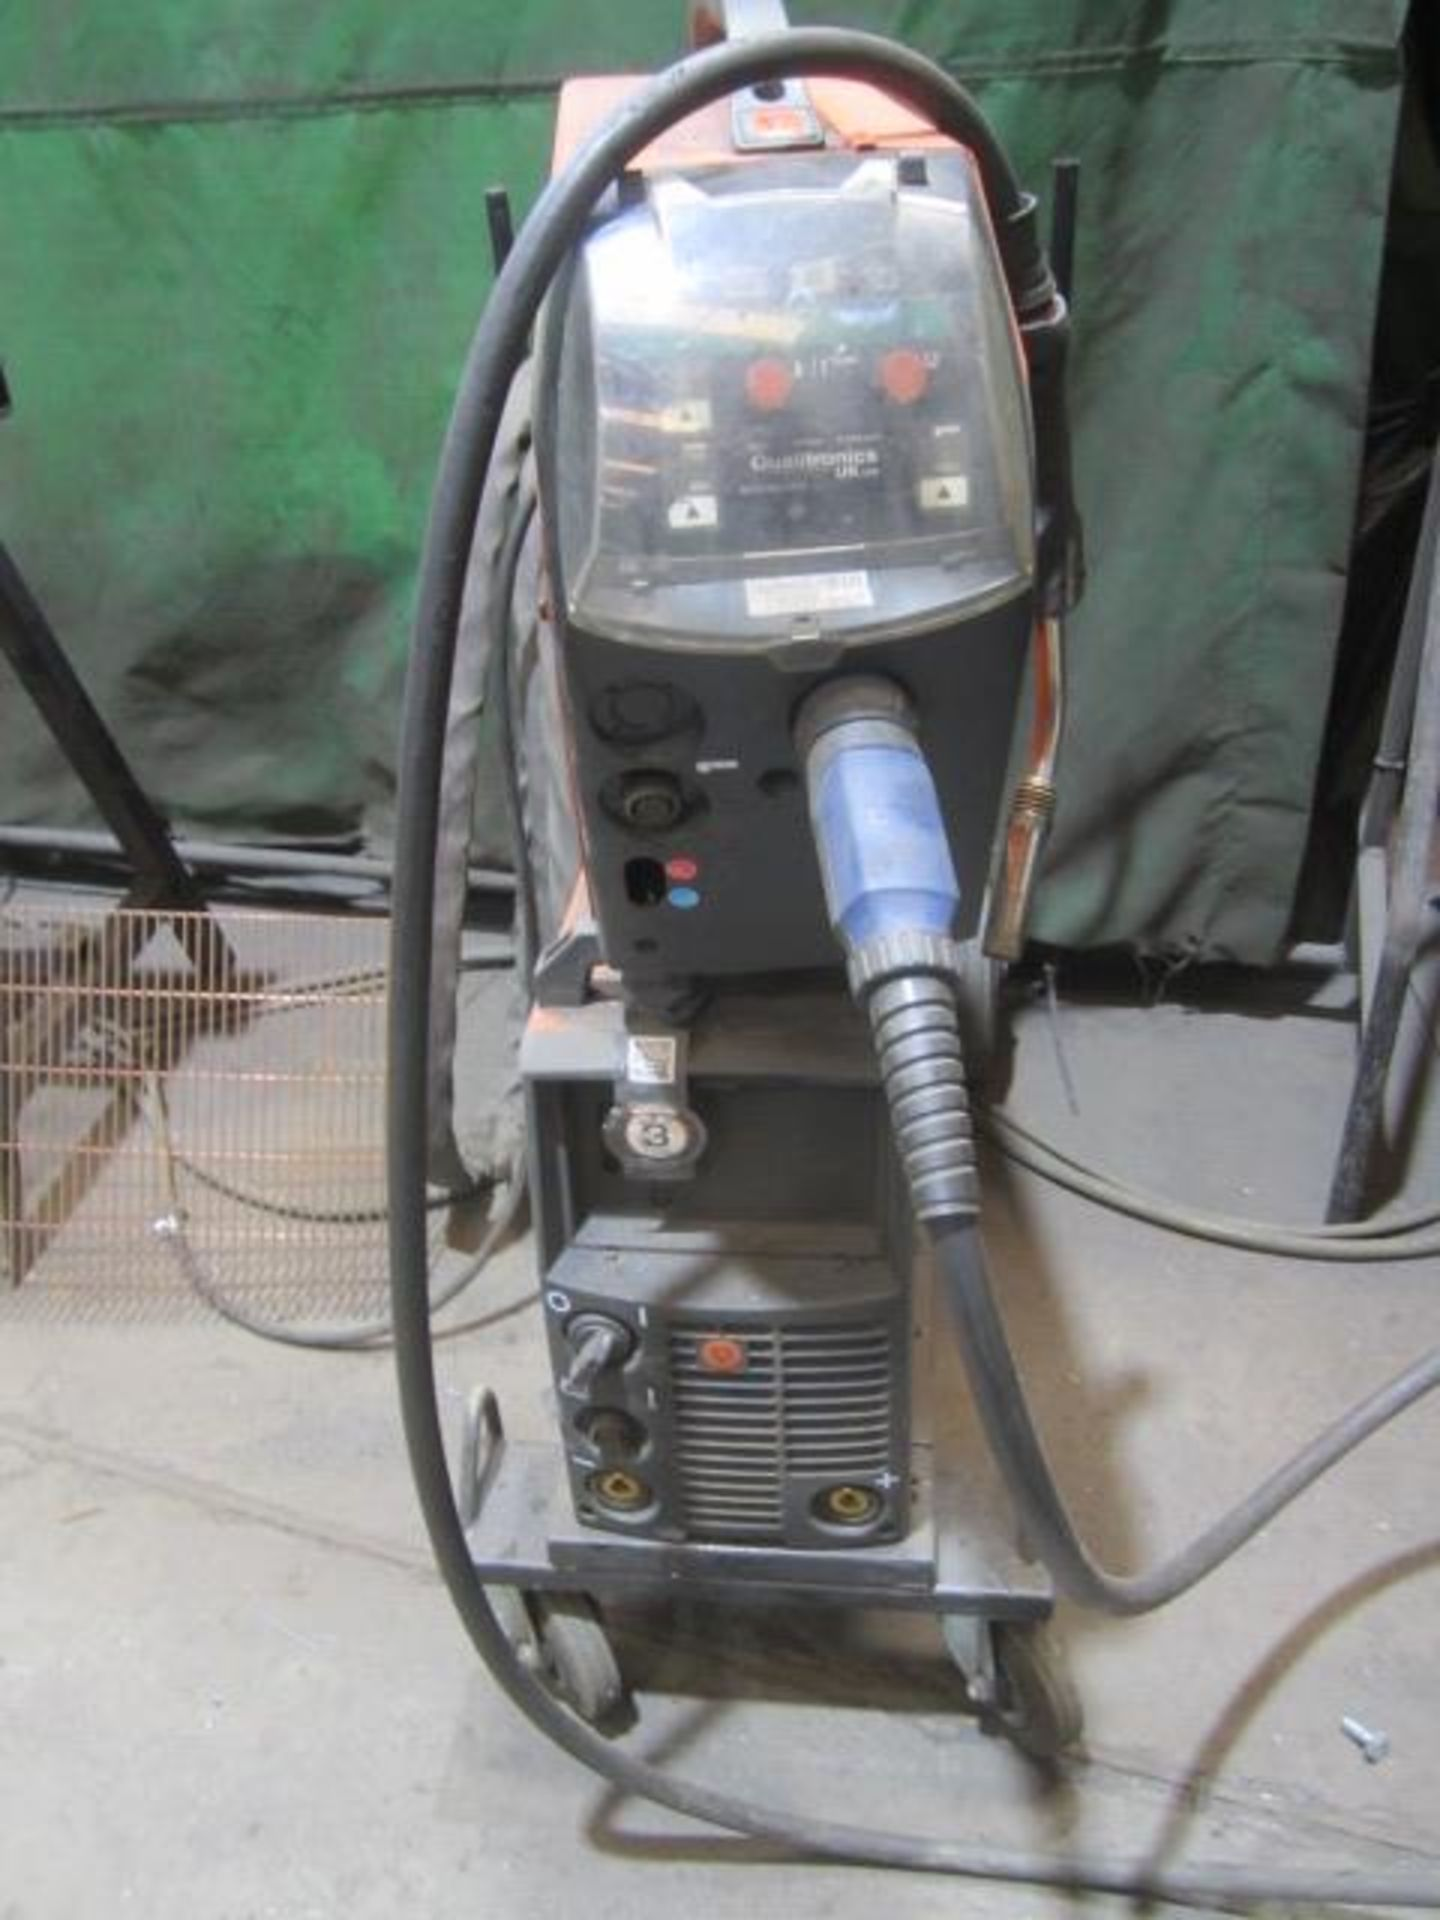 Kemppi Fast Mig M420 mig welder, serial no. 2674258, with Fast Mig MXF65 wire feeder, serial no. - Image 3 of 8